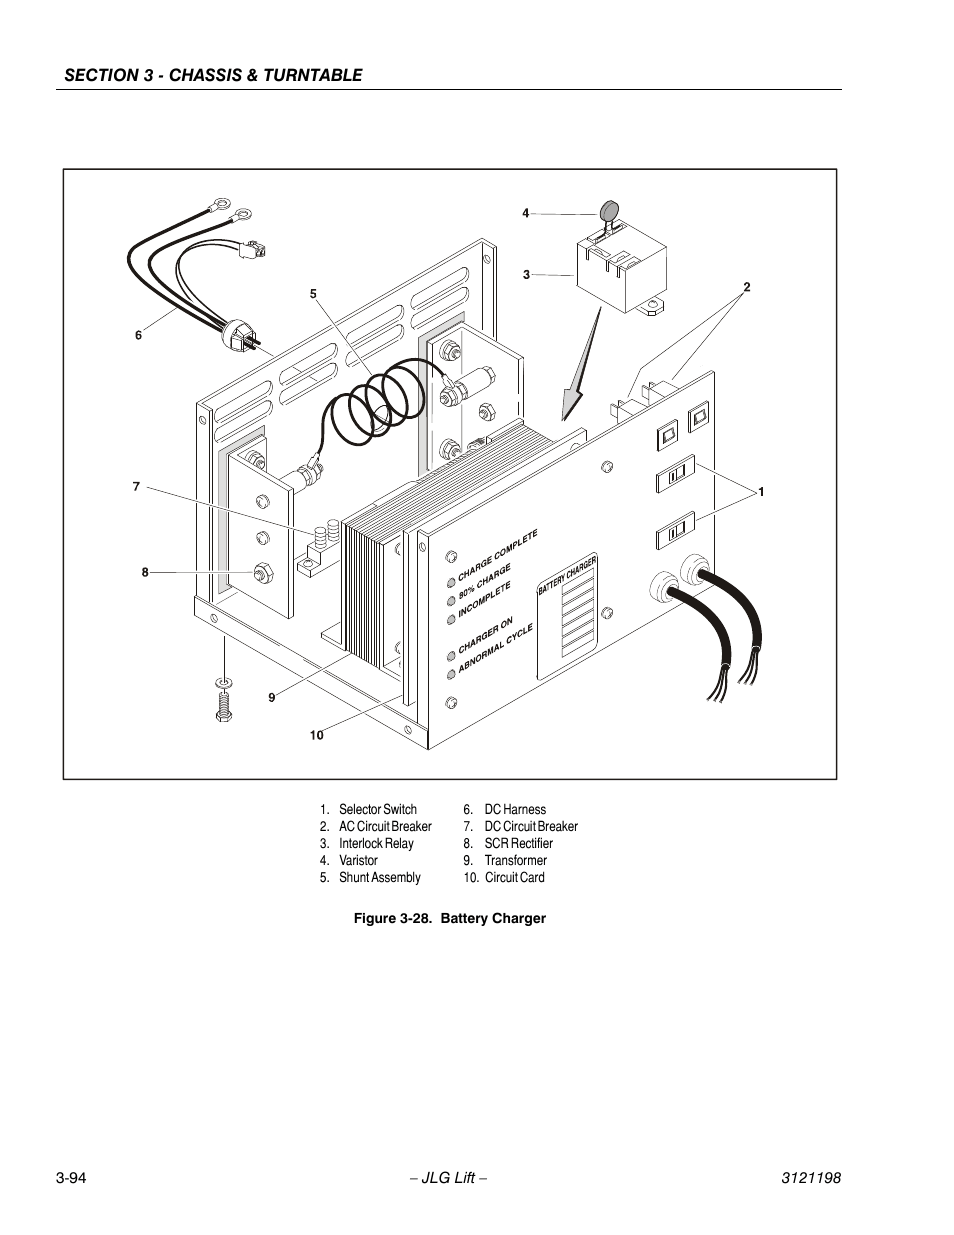 hight resolution of battery charger 95 jlg t350 service manual user manual page 130battery charger 95 jlg t350 service